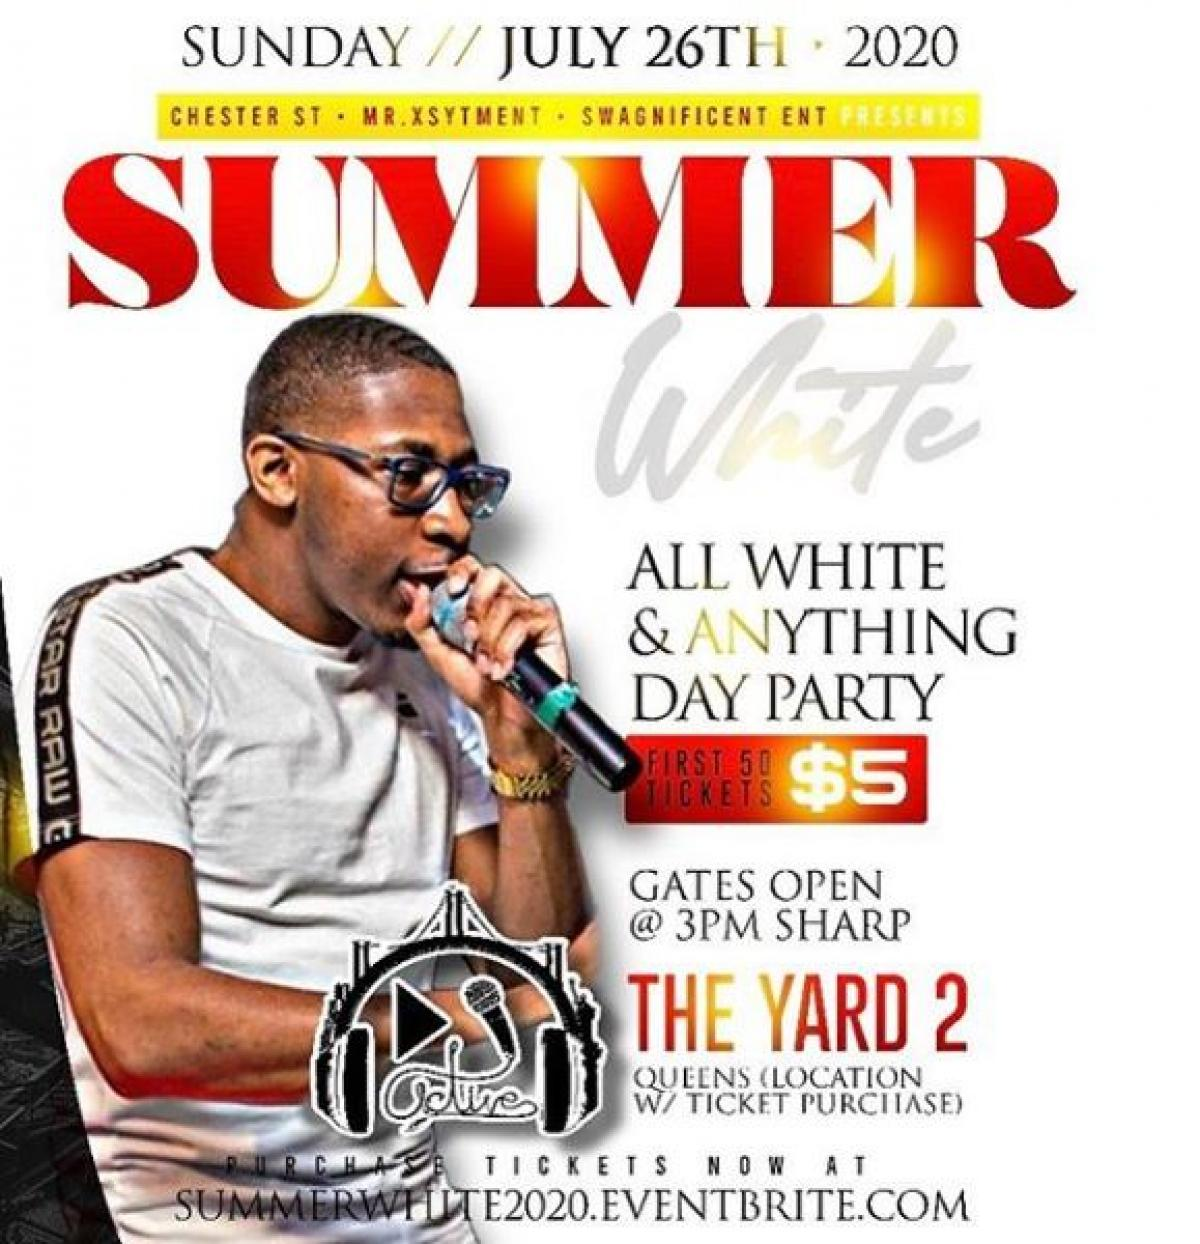 Summer White 2020 flyer or graphic.